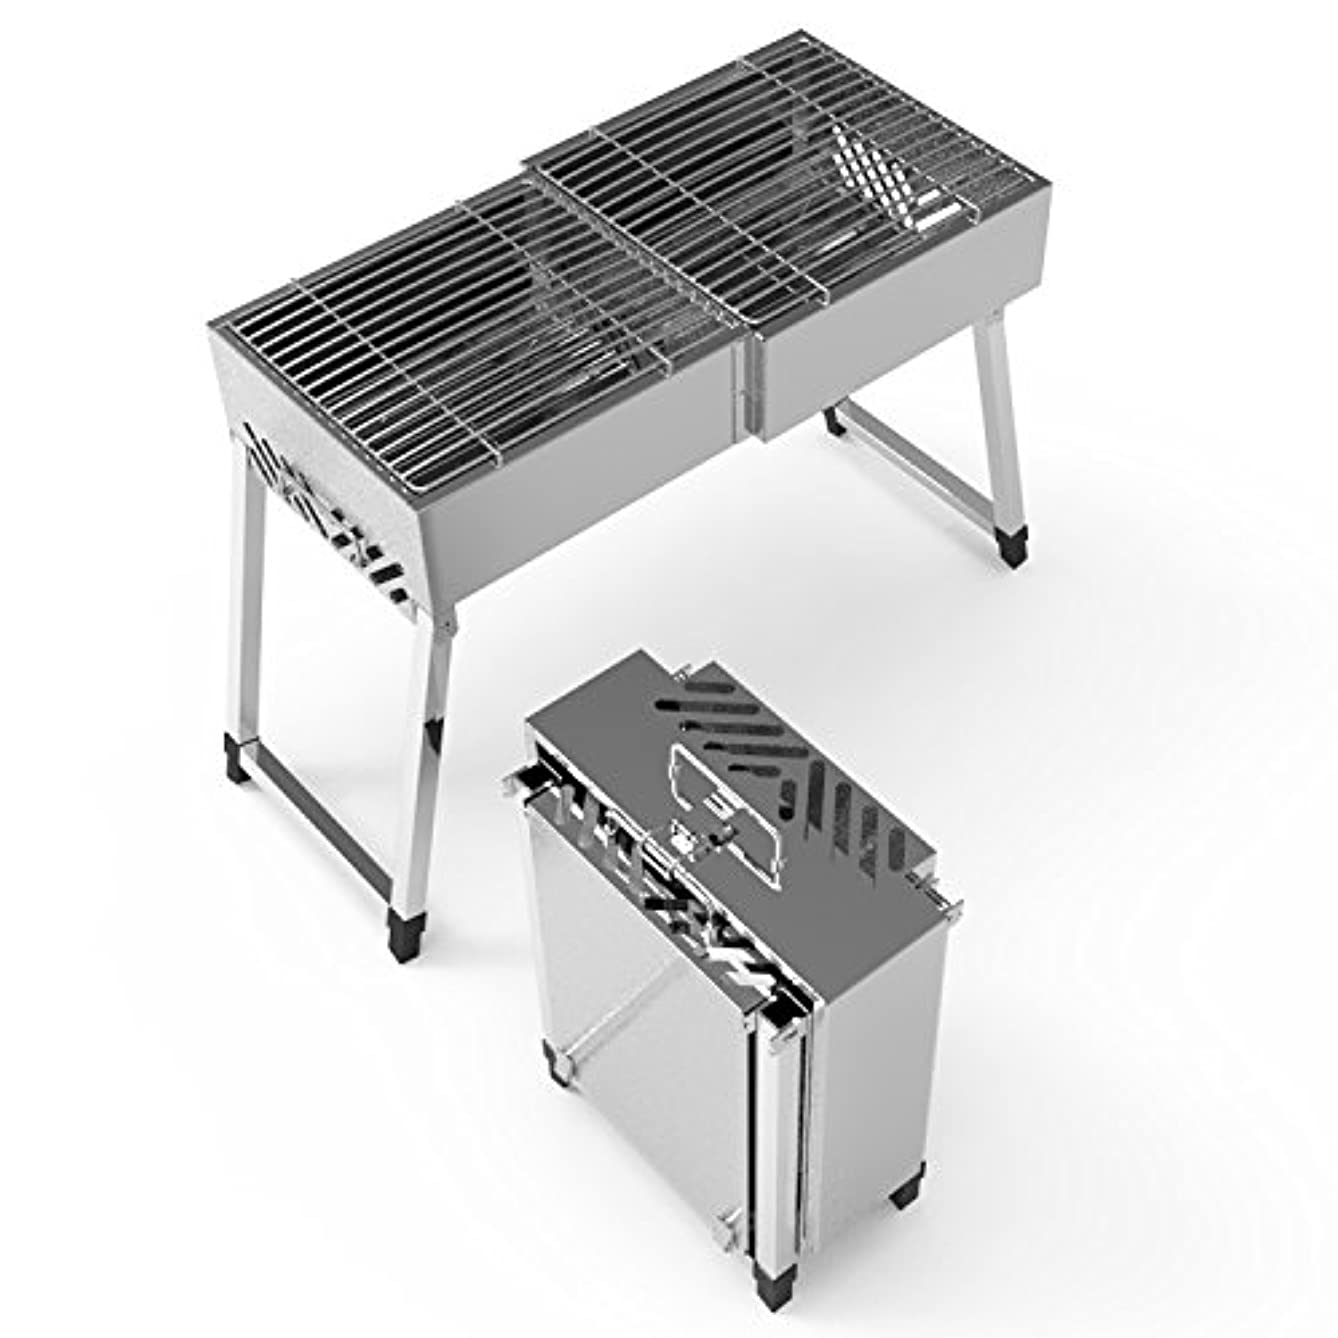 OOOQDUA Portable barbecue furnace for charcoal barbecue